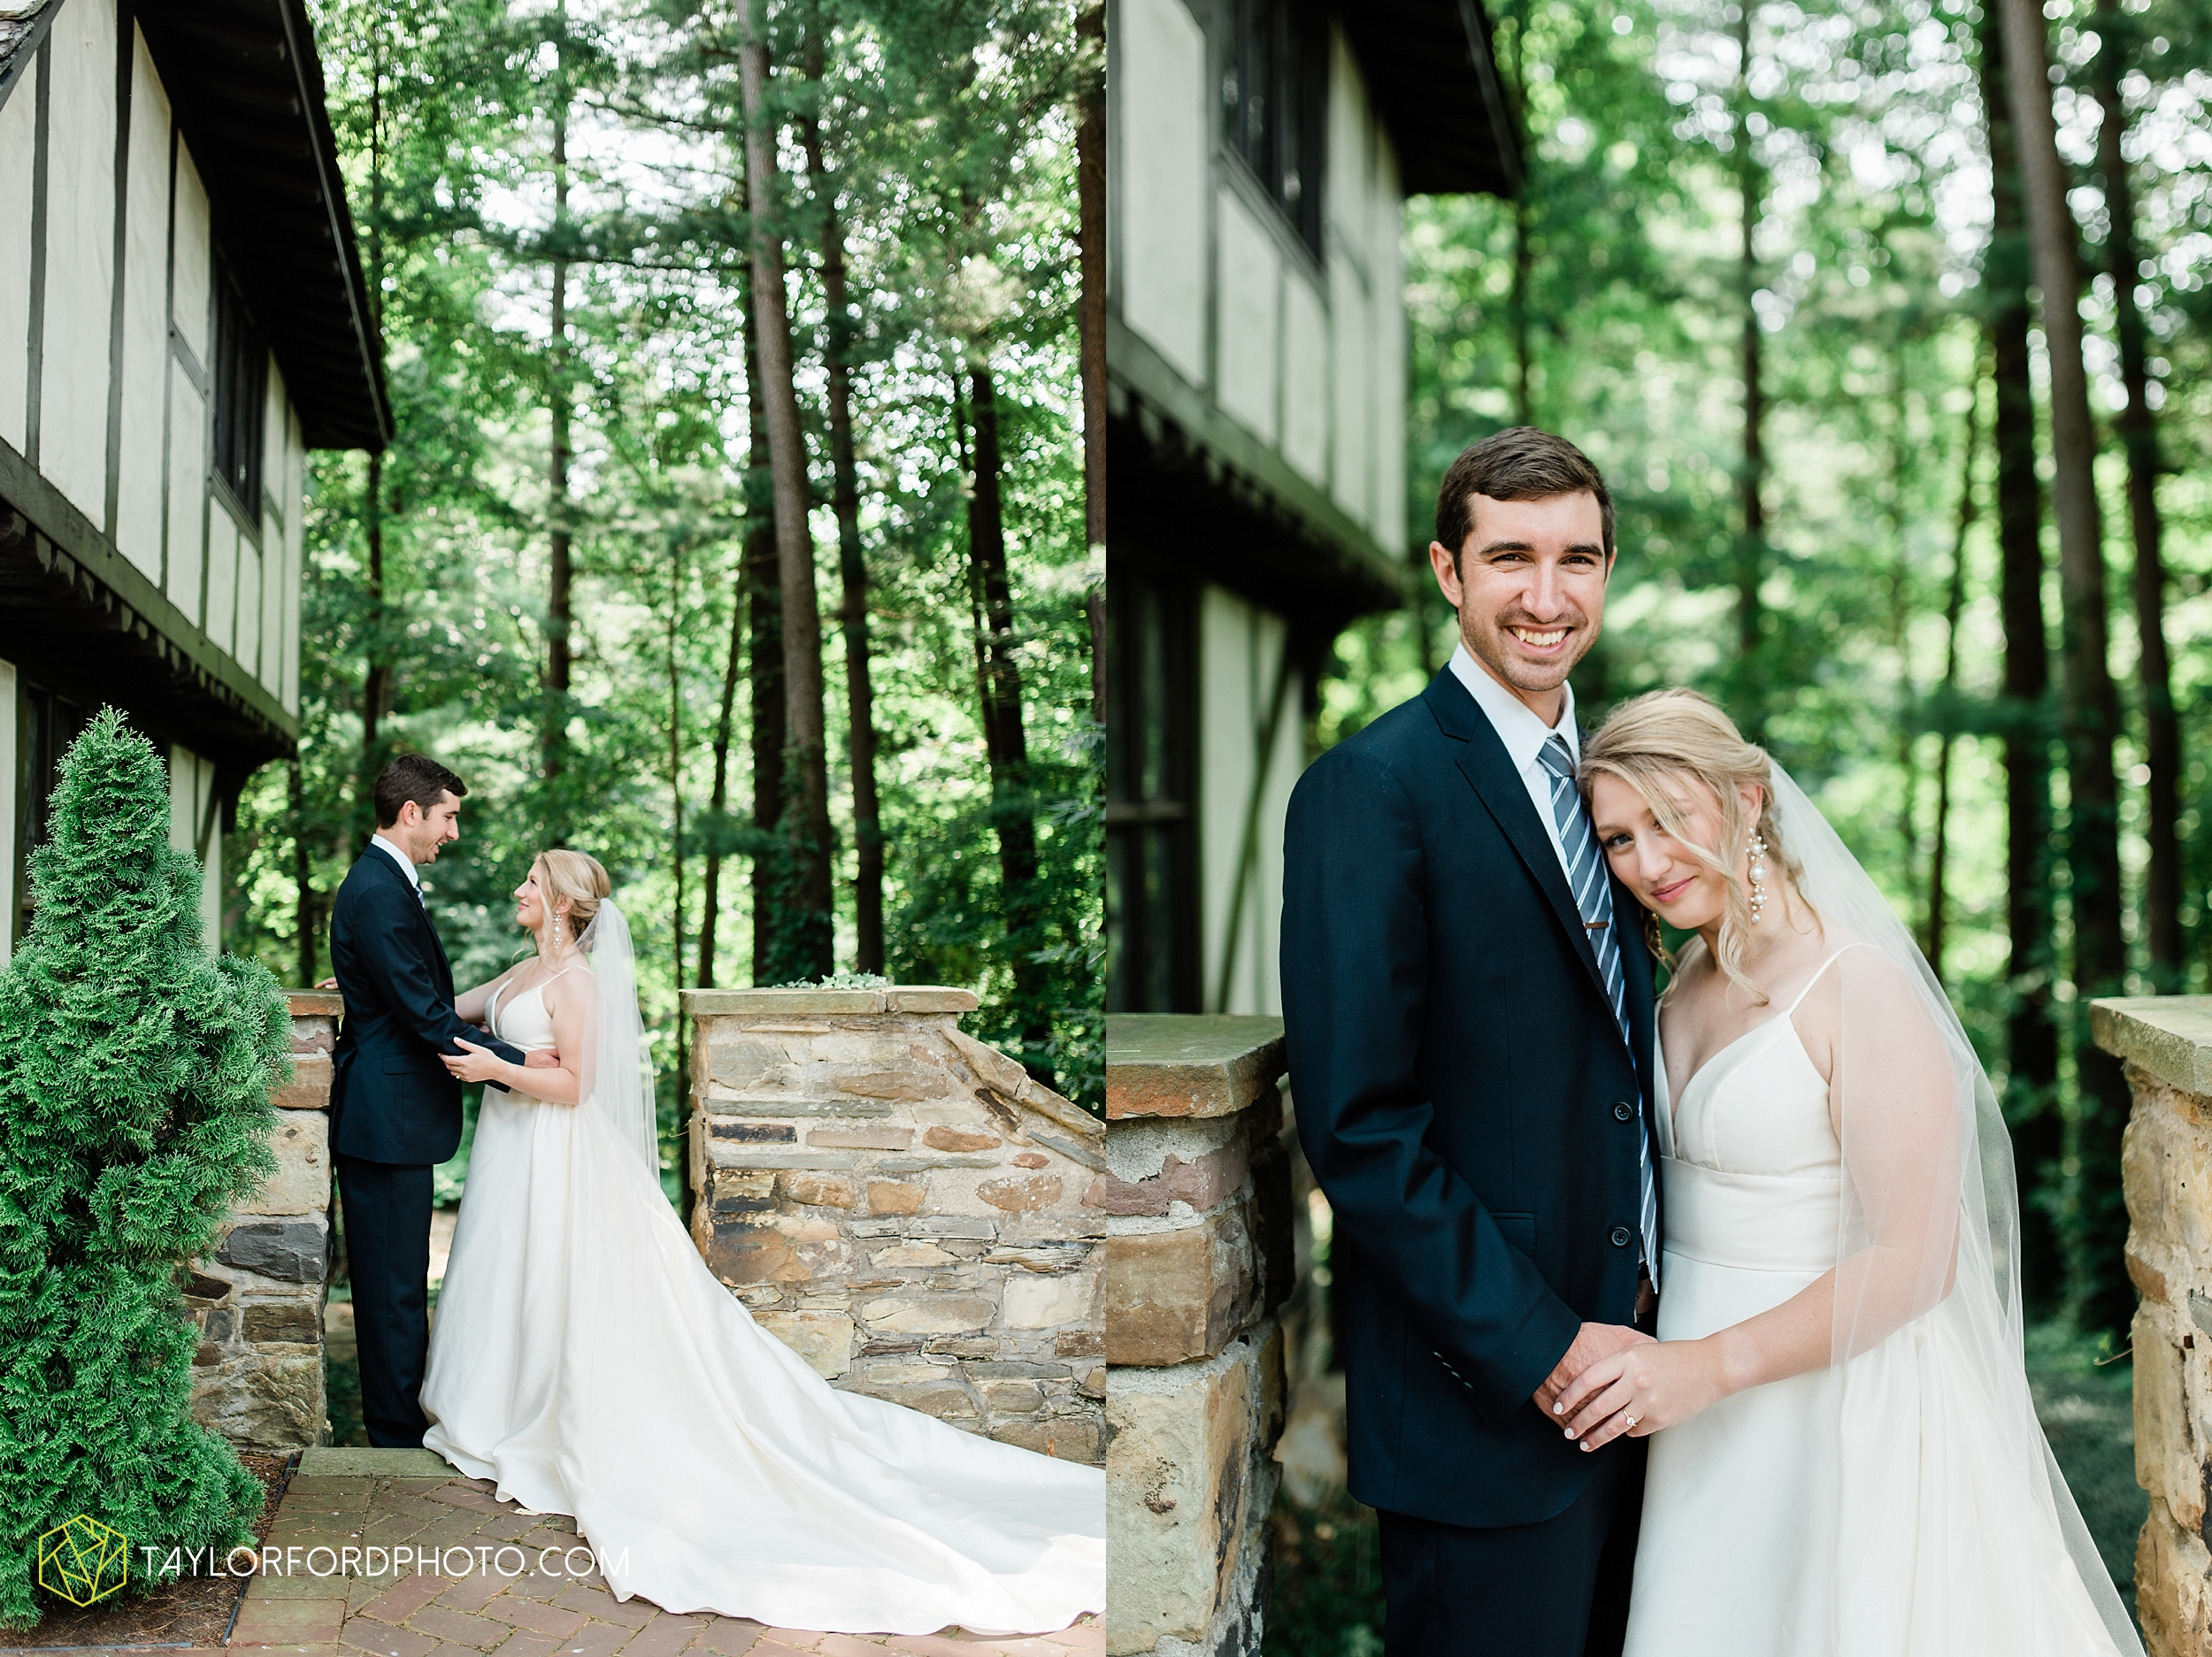 margot-may-evan-kohler-club-at-hillbrook-cleveland-chagrin-falls-outdoor-wedding-bhldn-gardenview-flowers-toledo-photographer-taylor-ford-photographer_9498.jpg